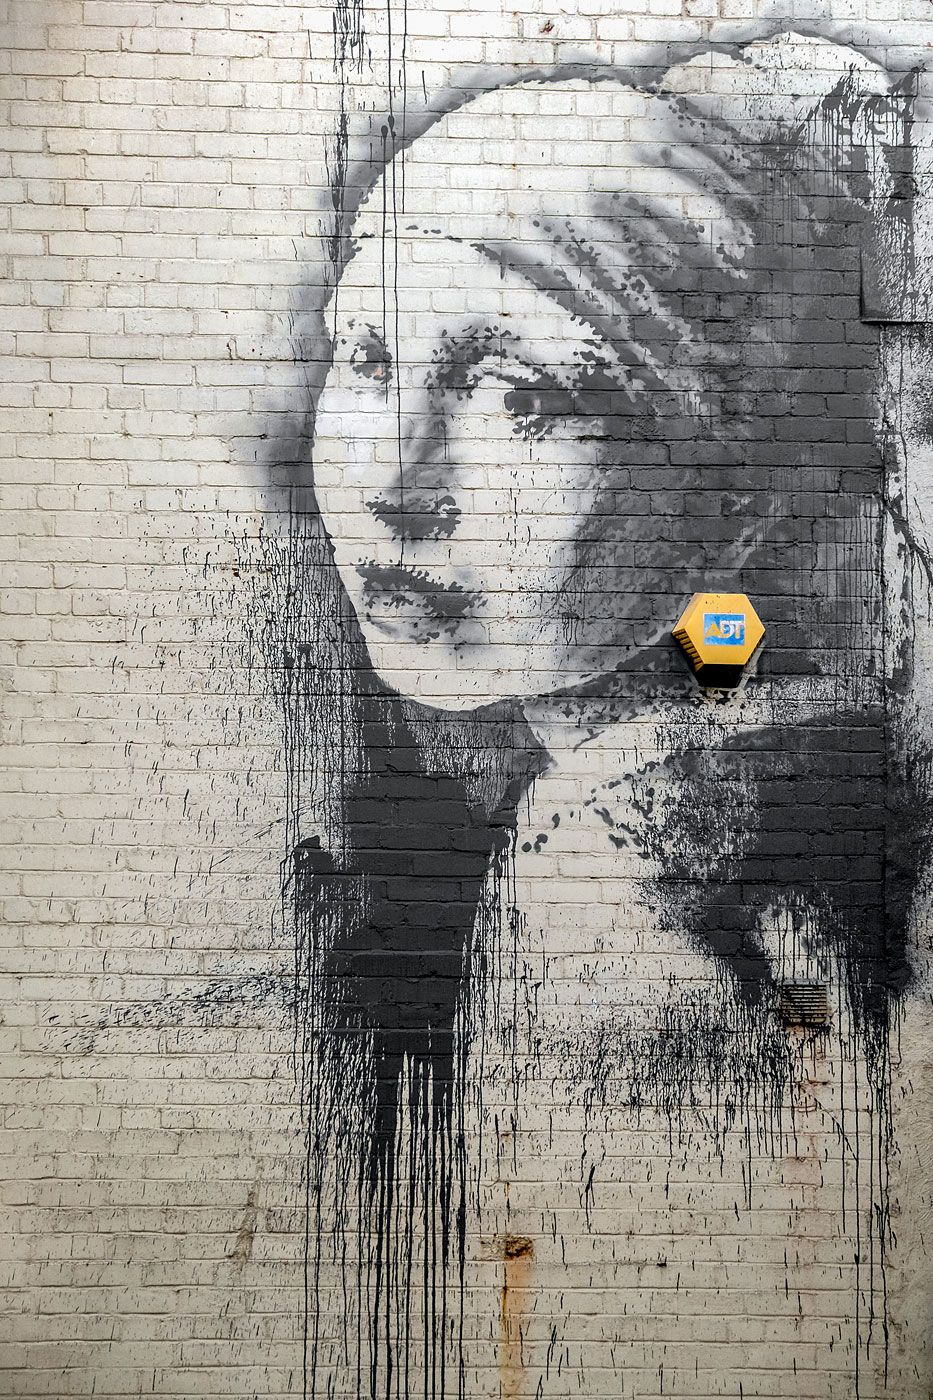 Banksy Parodies Girl With a Pearl Earring in New Painting | Banksy ...